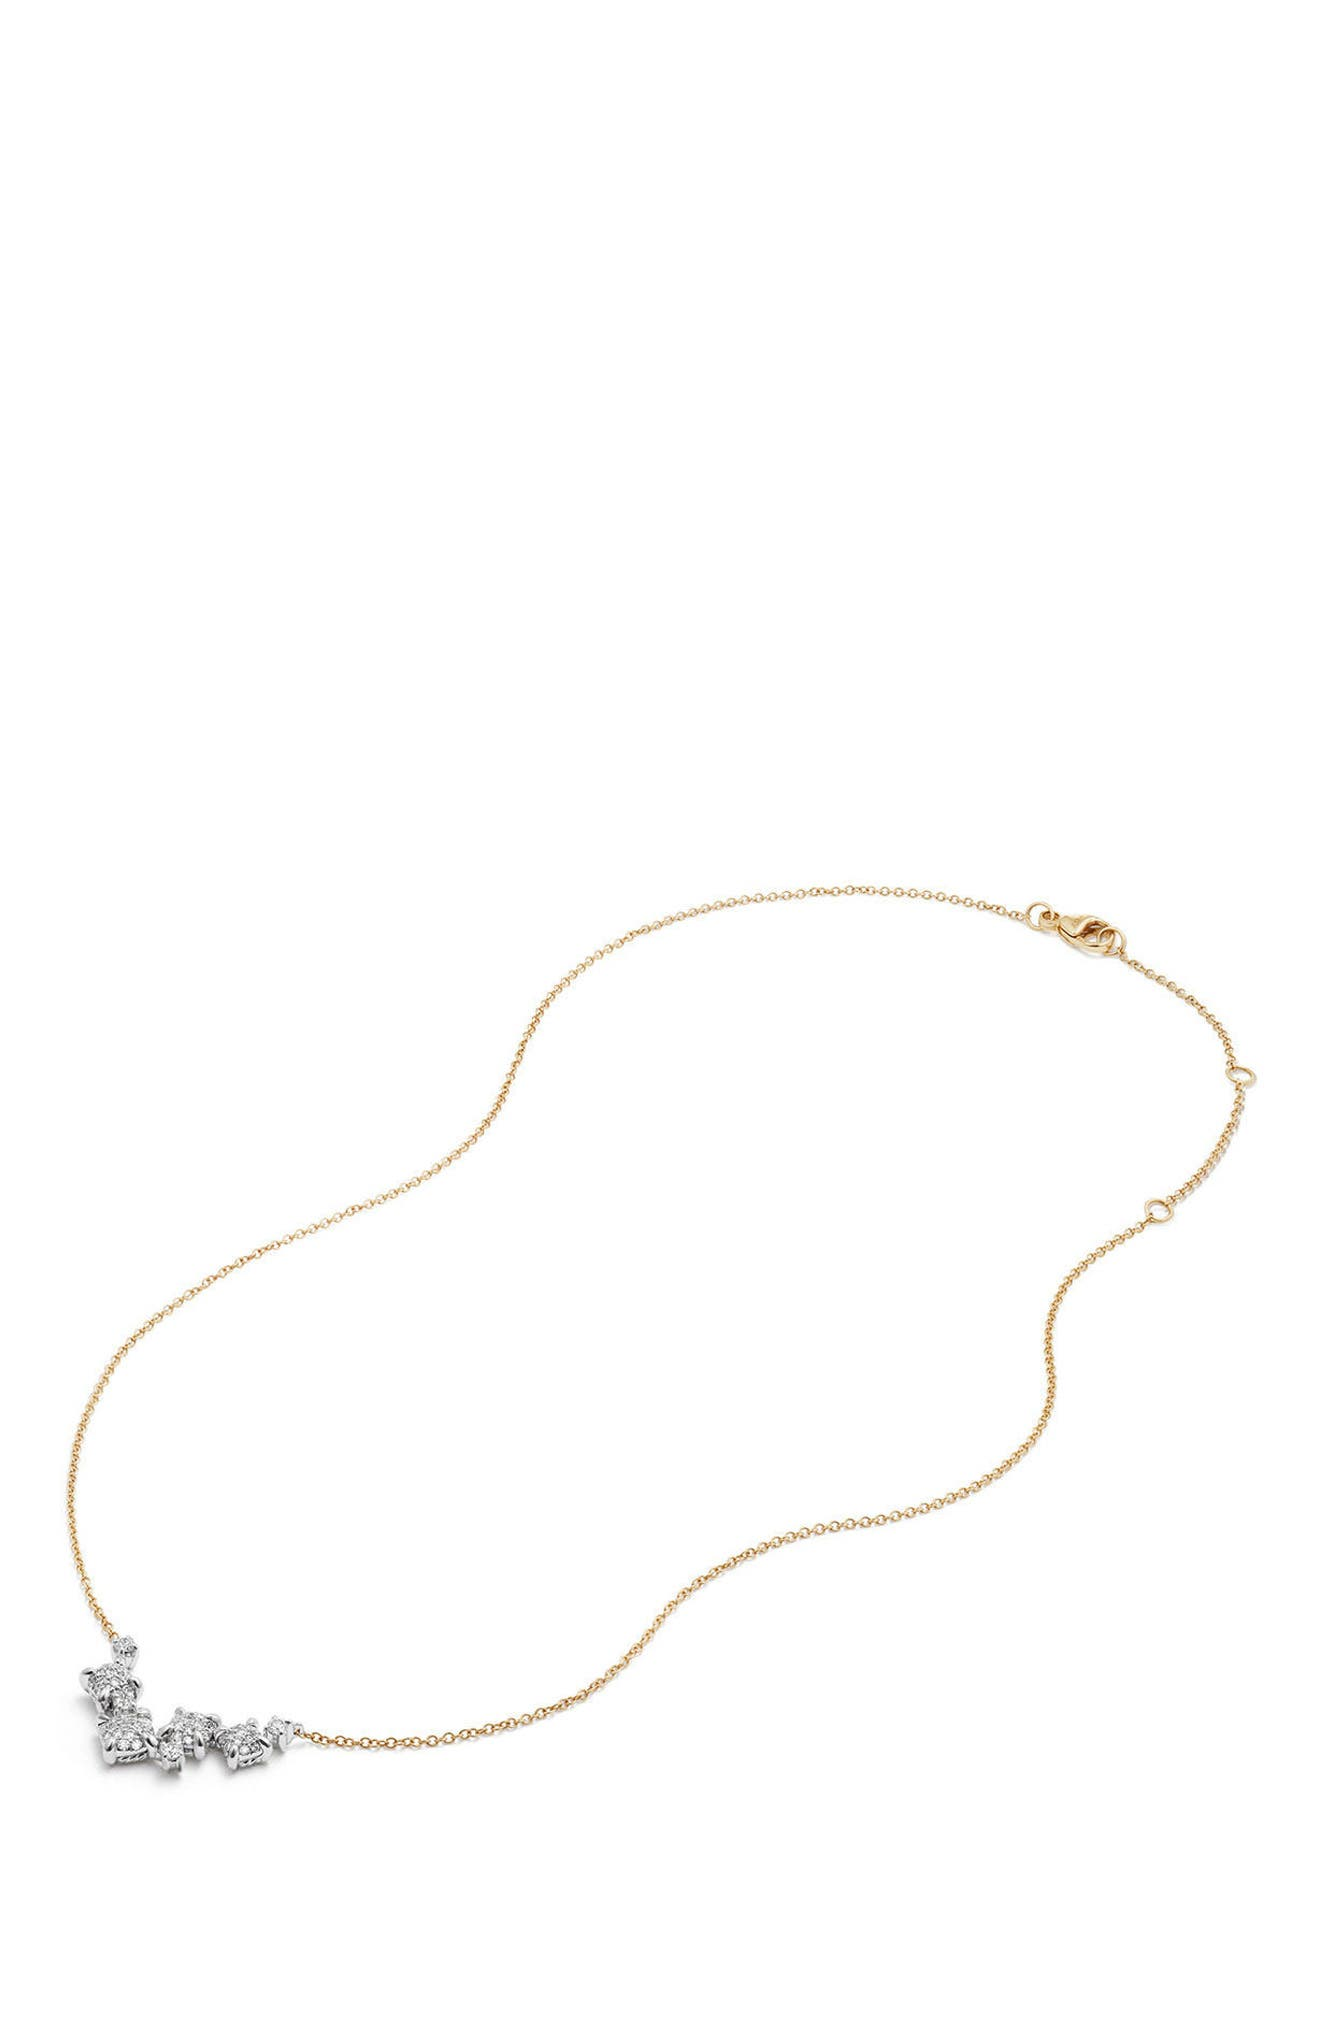 Precious Châtelaine Necklace with Diamonds in 18K Gold,                             Alternate thumbnail 4, color,                             YELLOW GOLD/ DIAMOND